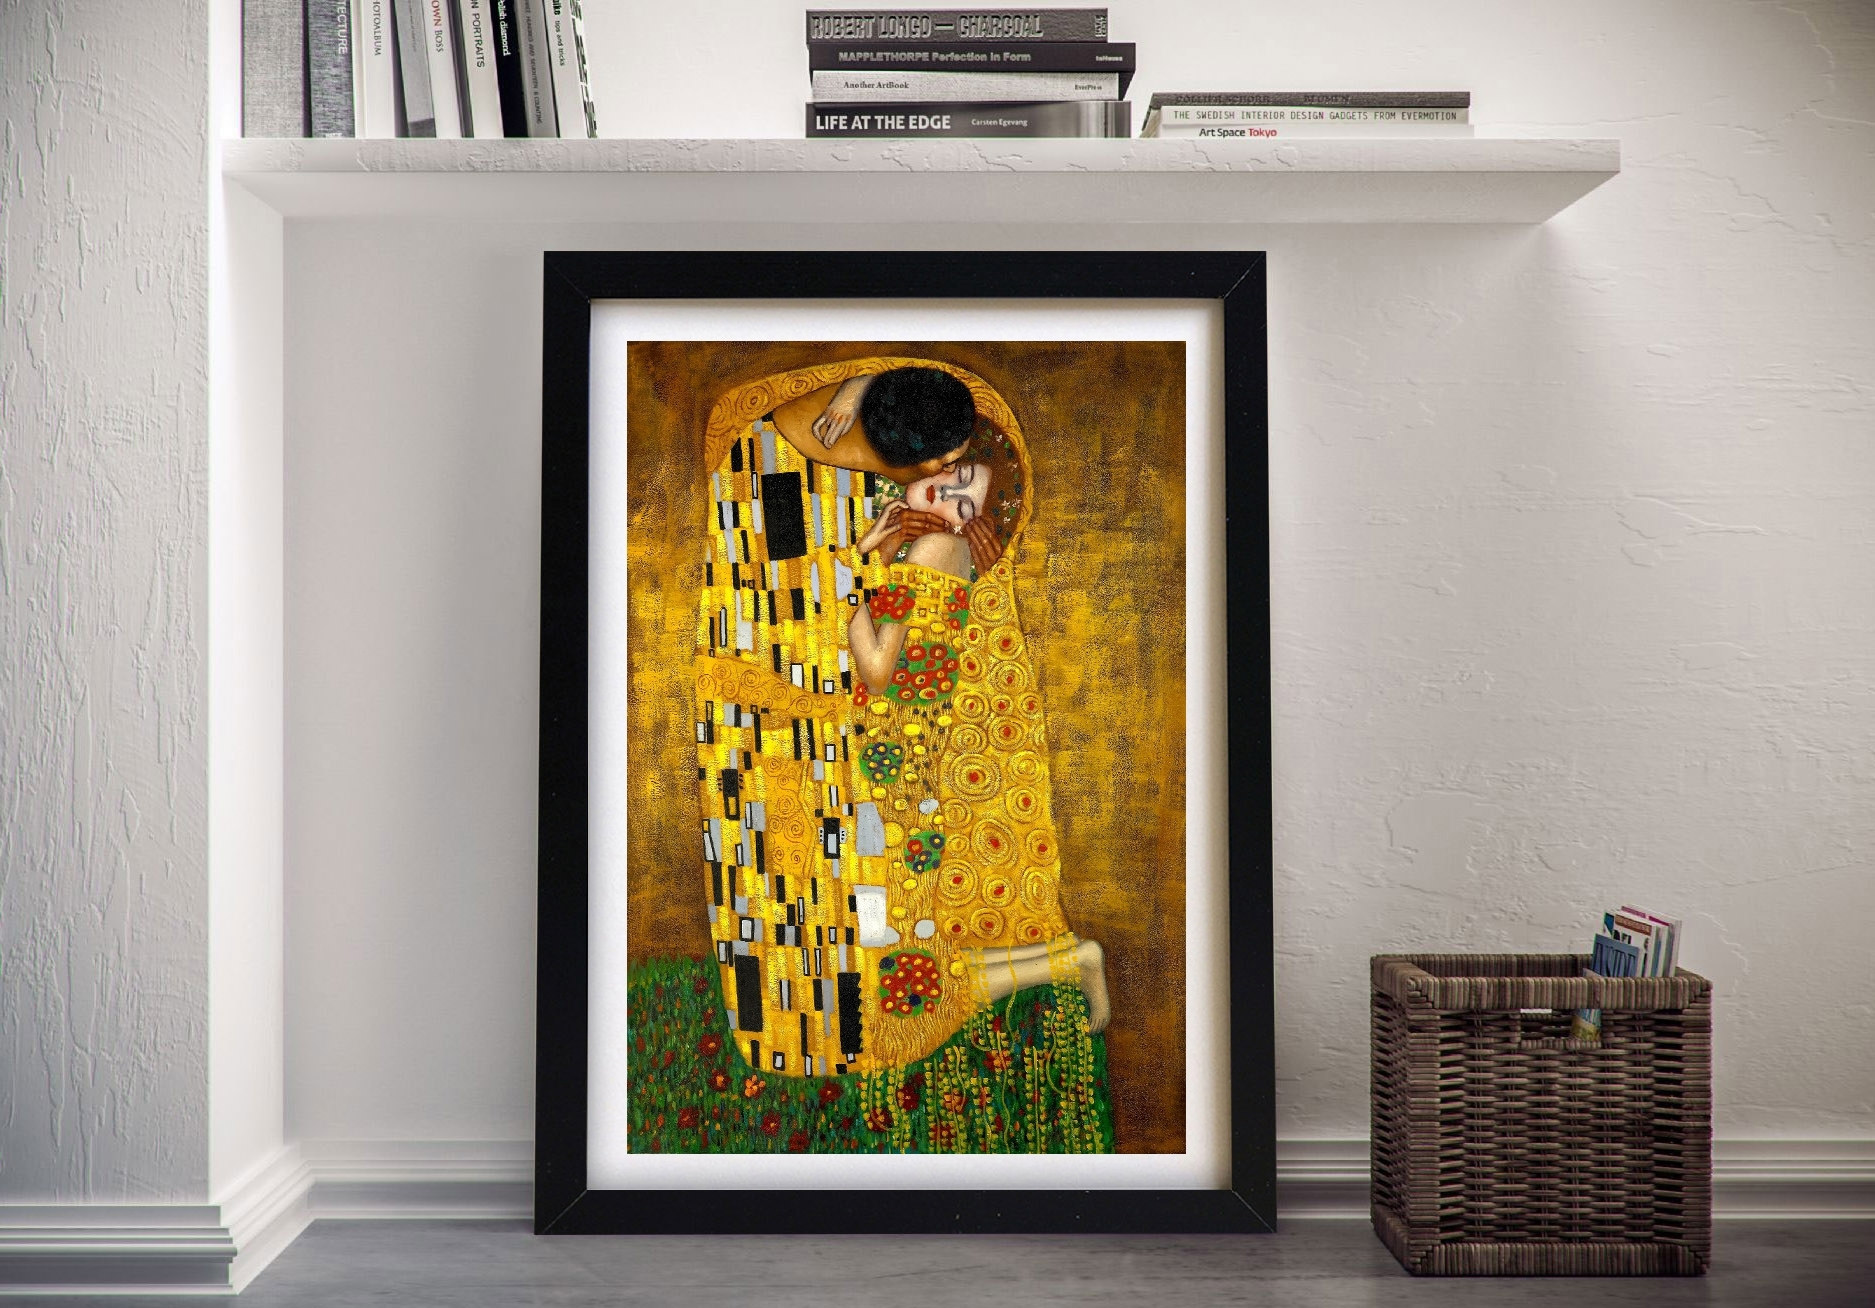 Classical Art Prints | Van Gogh, Monet, Renoir, Klimt Canvas Wall With Most Popular Port Elizabeth Canvas Wall Art (Gallery 12 of 15)